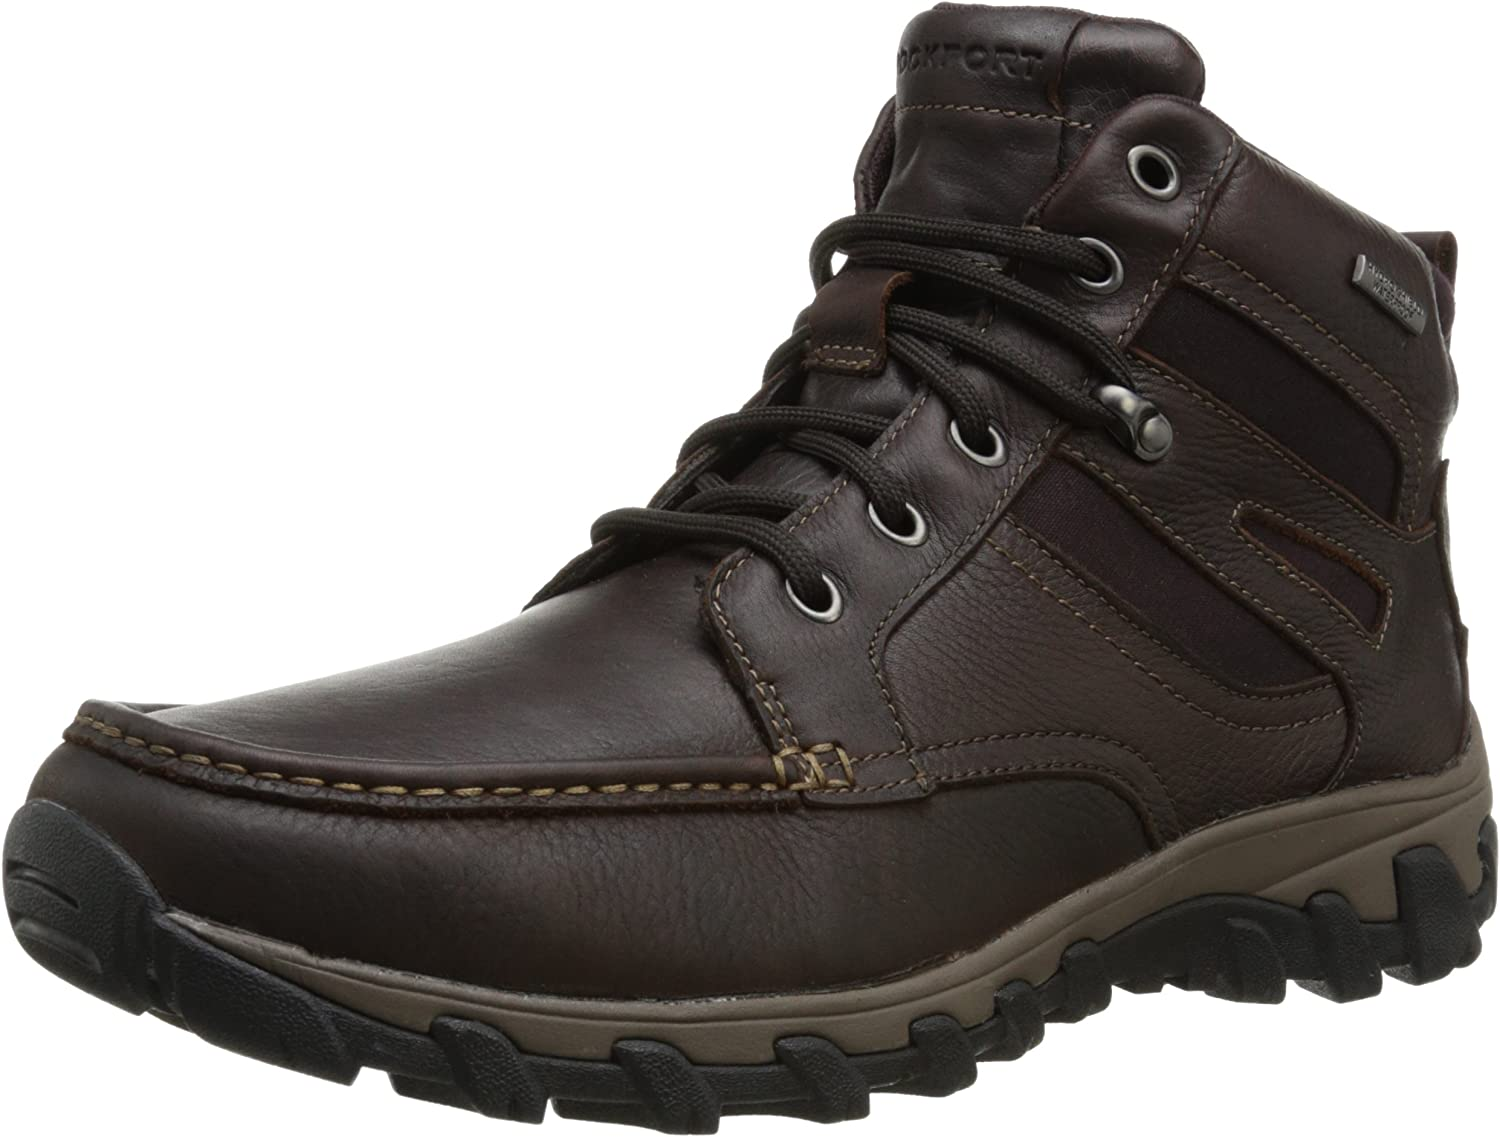 Rockport Men s Cold Springs Plus MC Toe Snow Boot